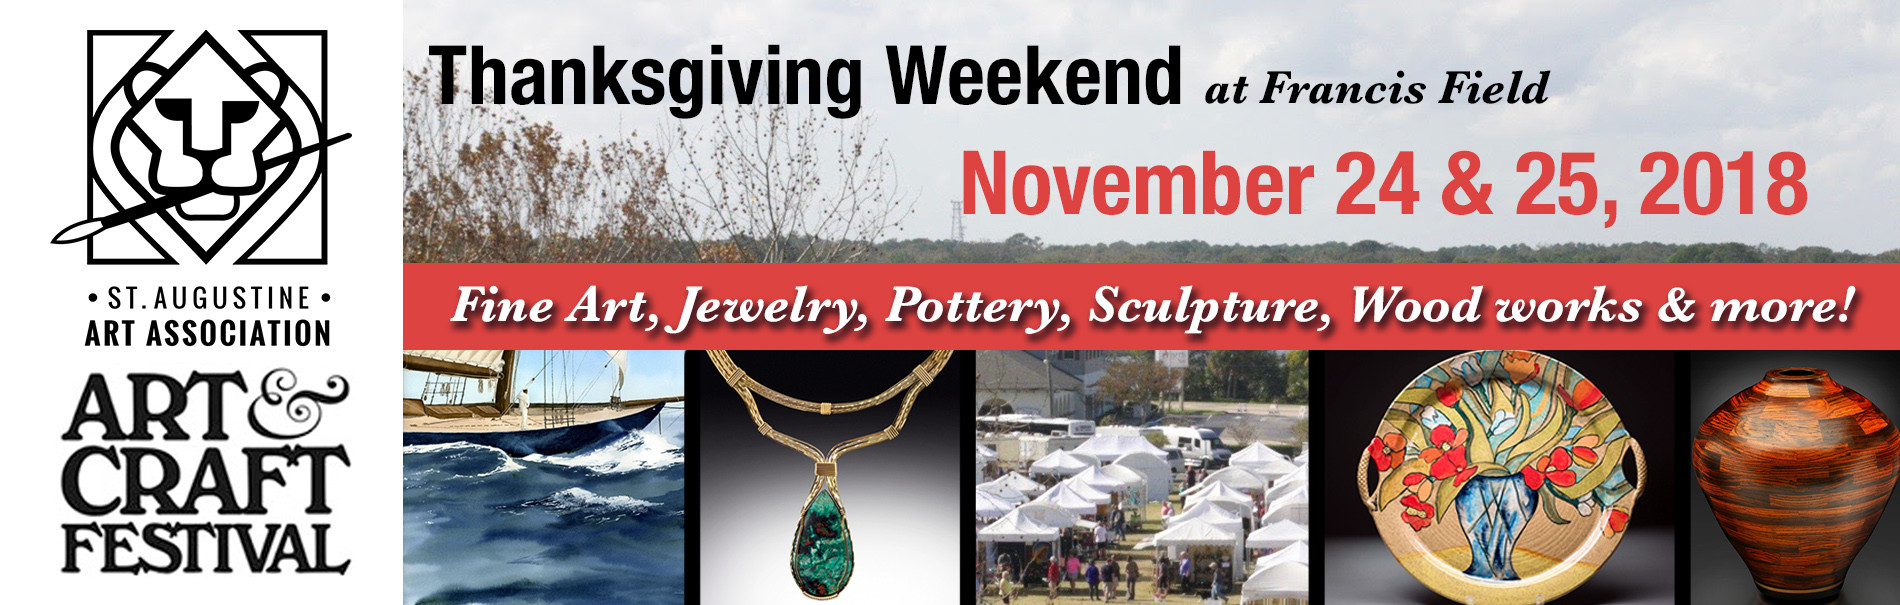 image ad for thanksgiving art and craft festival